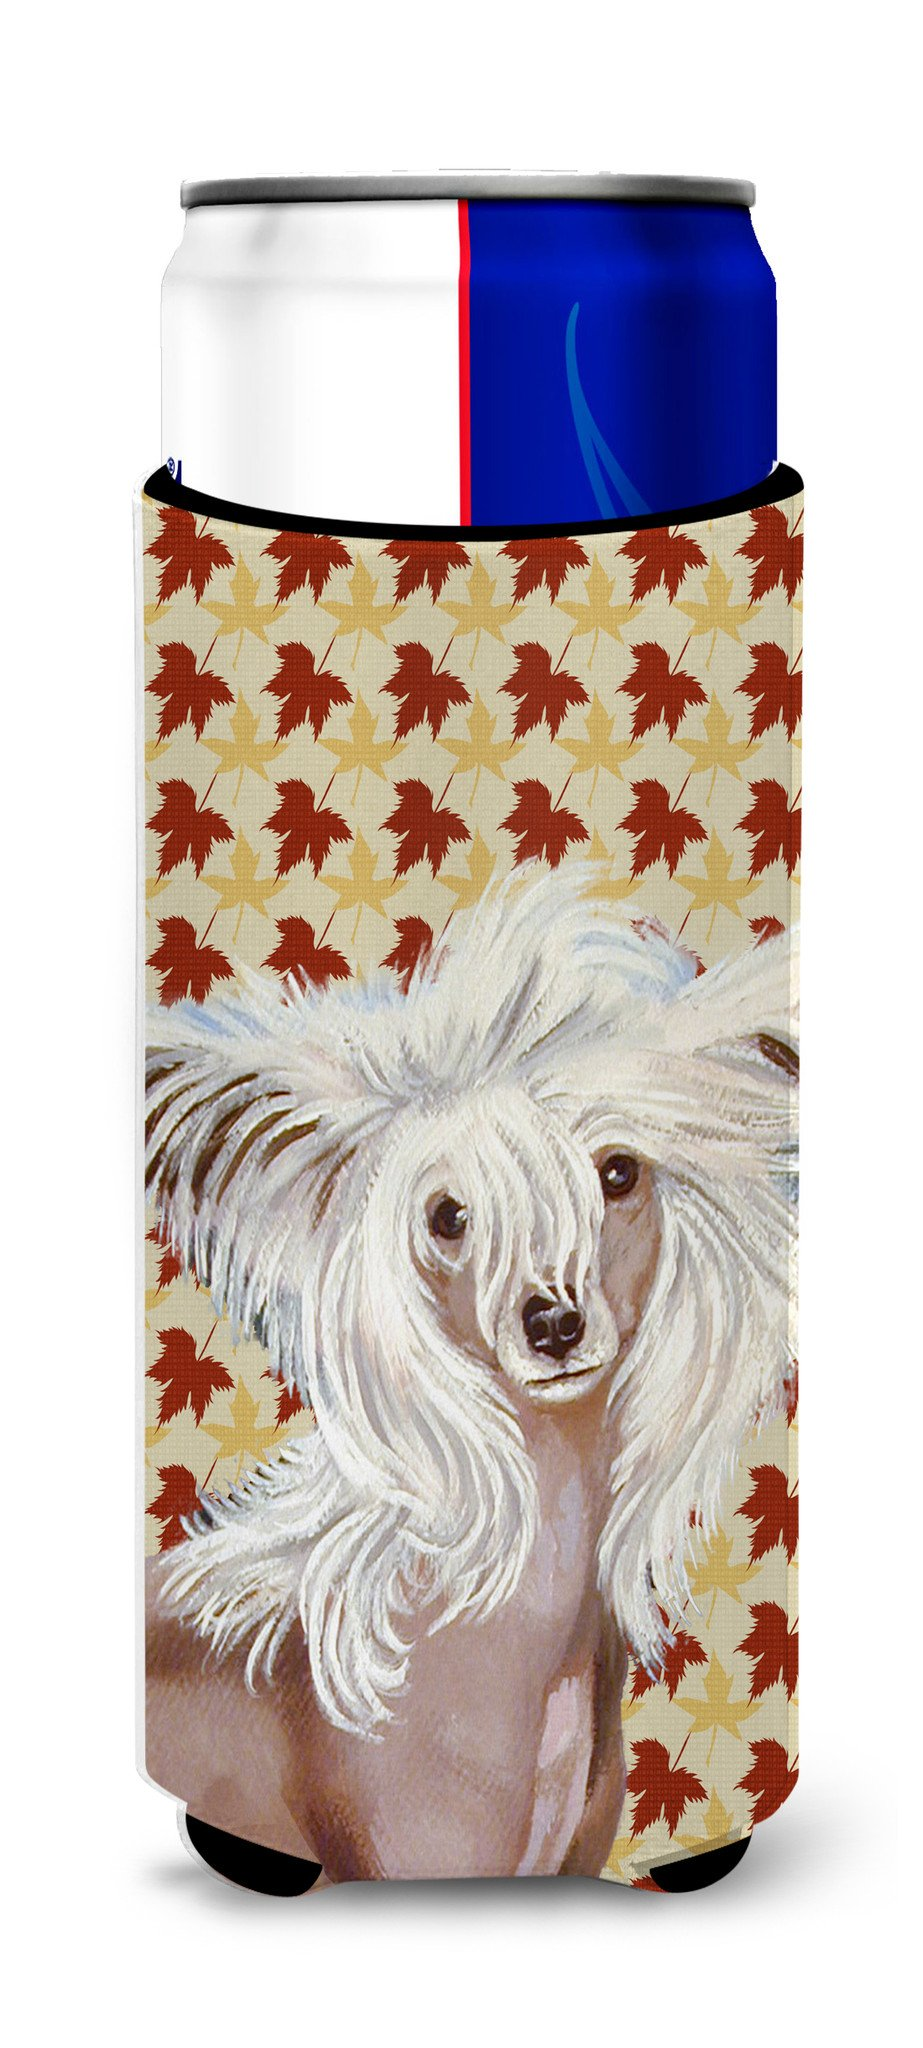 Chinese Crested Fall Leaves Portrait Ultra Beverage Insulators for slim cans LH9122MUK by Caroline's Treasures